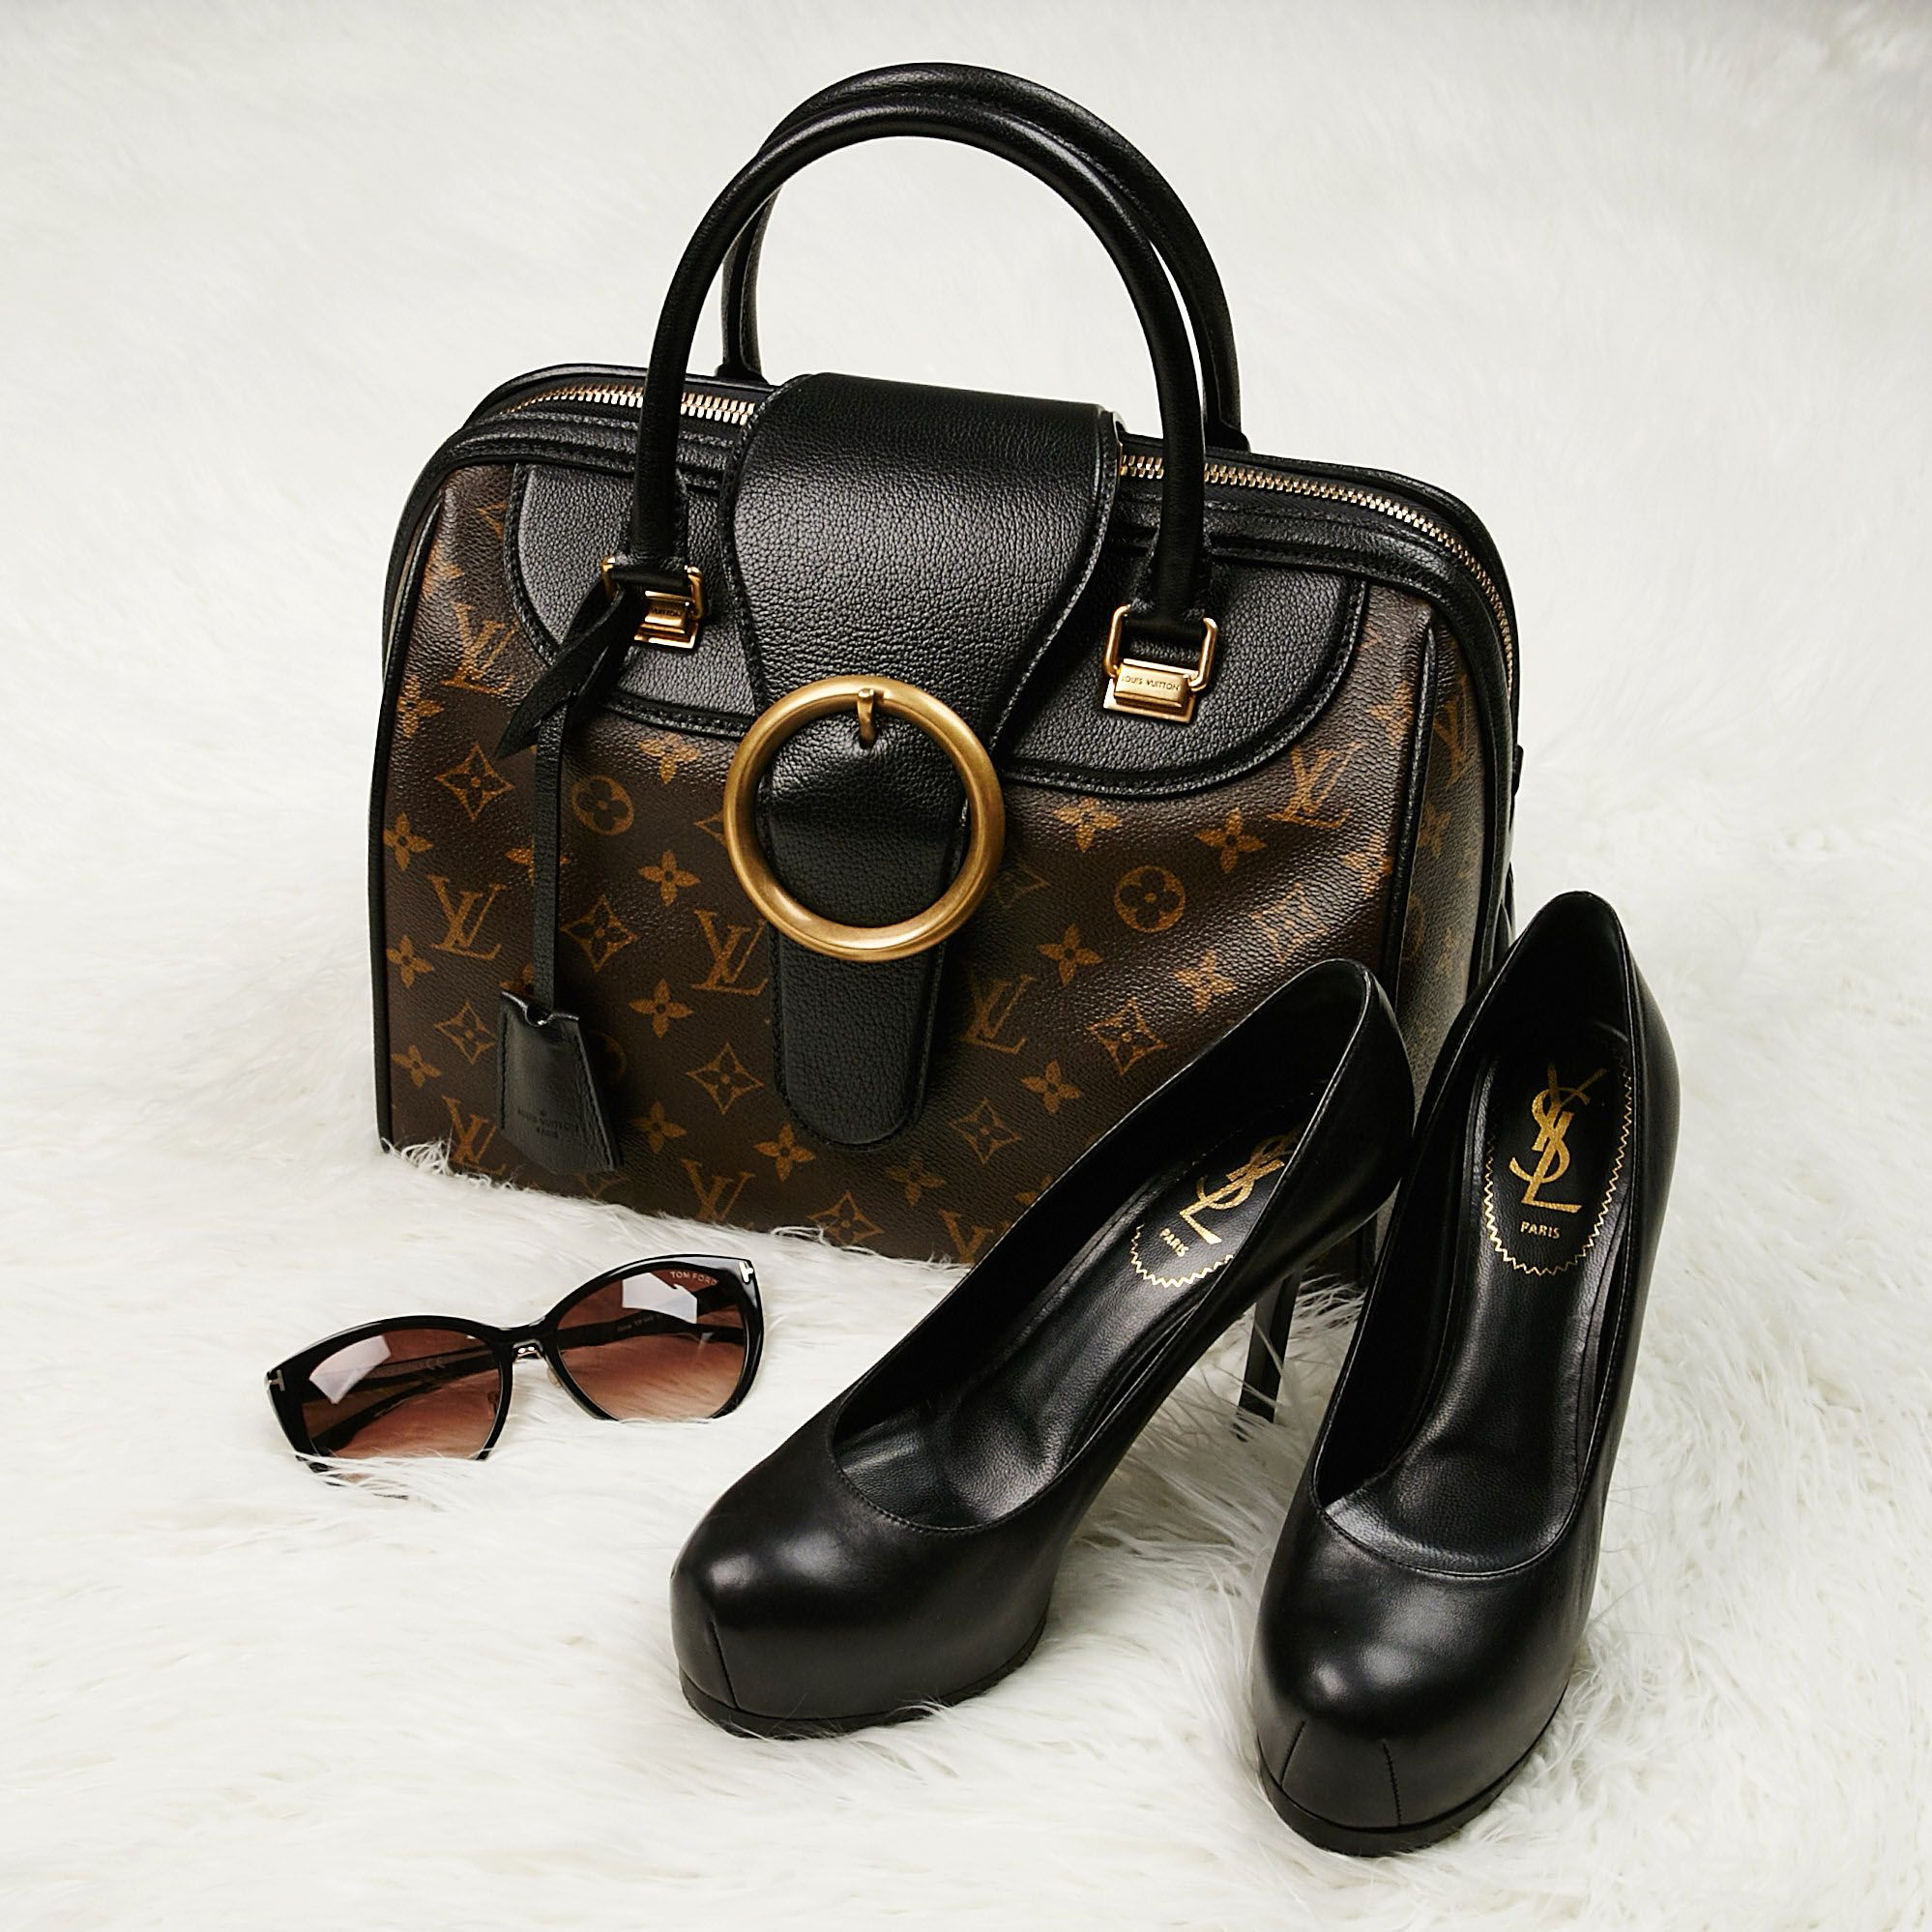 a946d4a58ce1 Who says looking professional has to be boring! - Yoogi s Closet ...